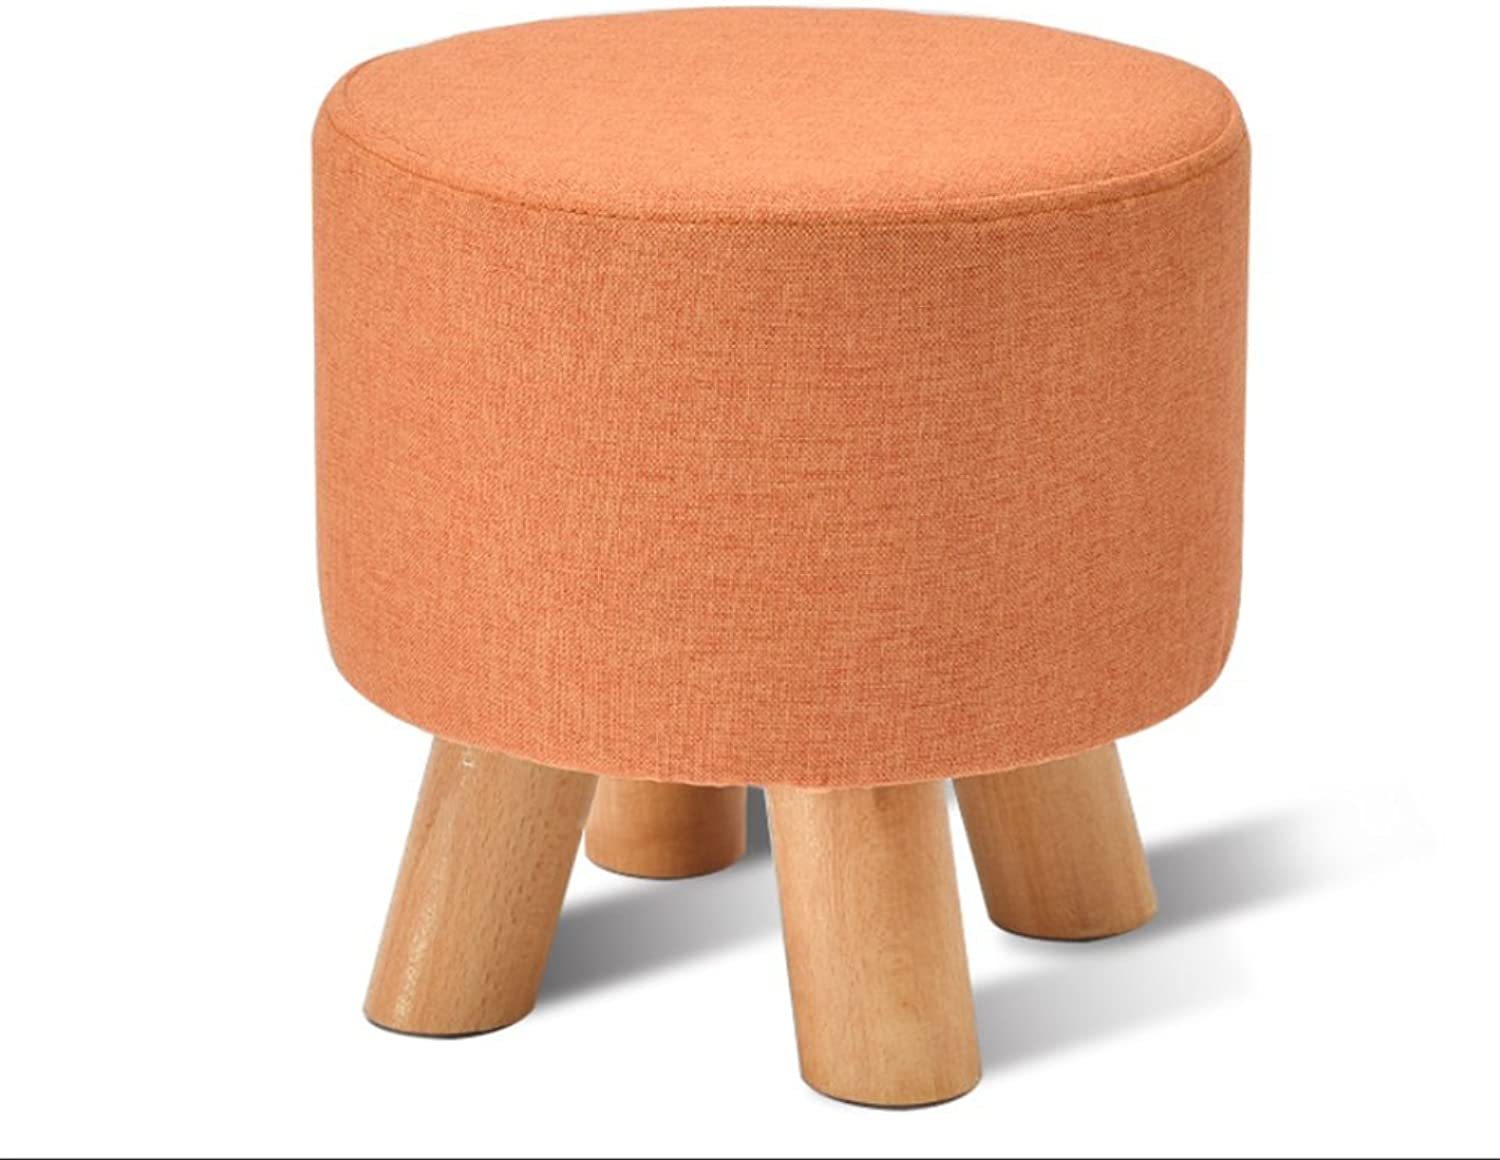 Fabric Small Round Stool, Home Living Room Sofa Bench, Simple Doorway shoes Bench,D